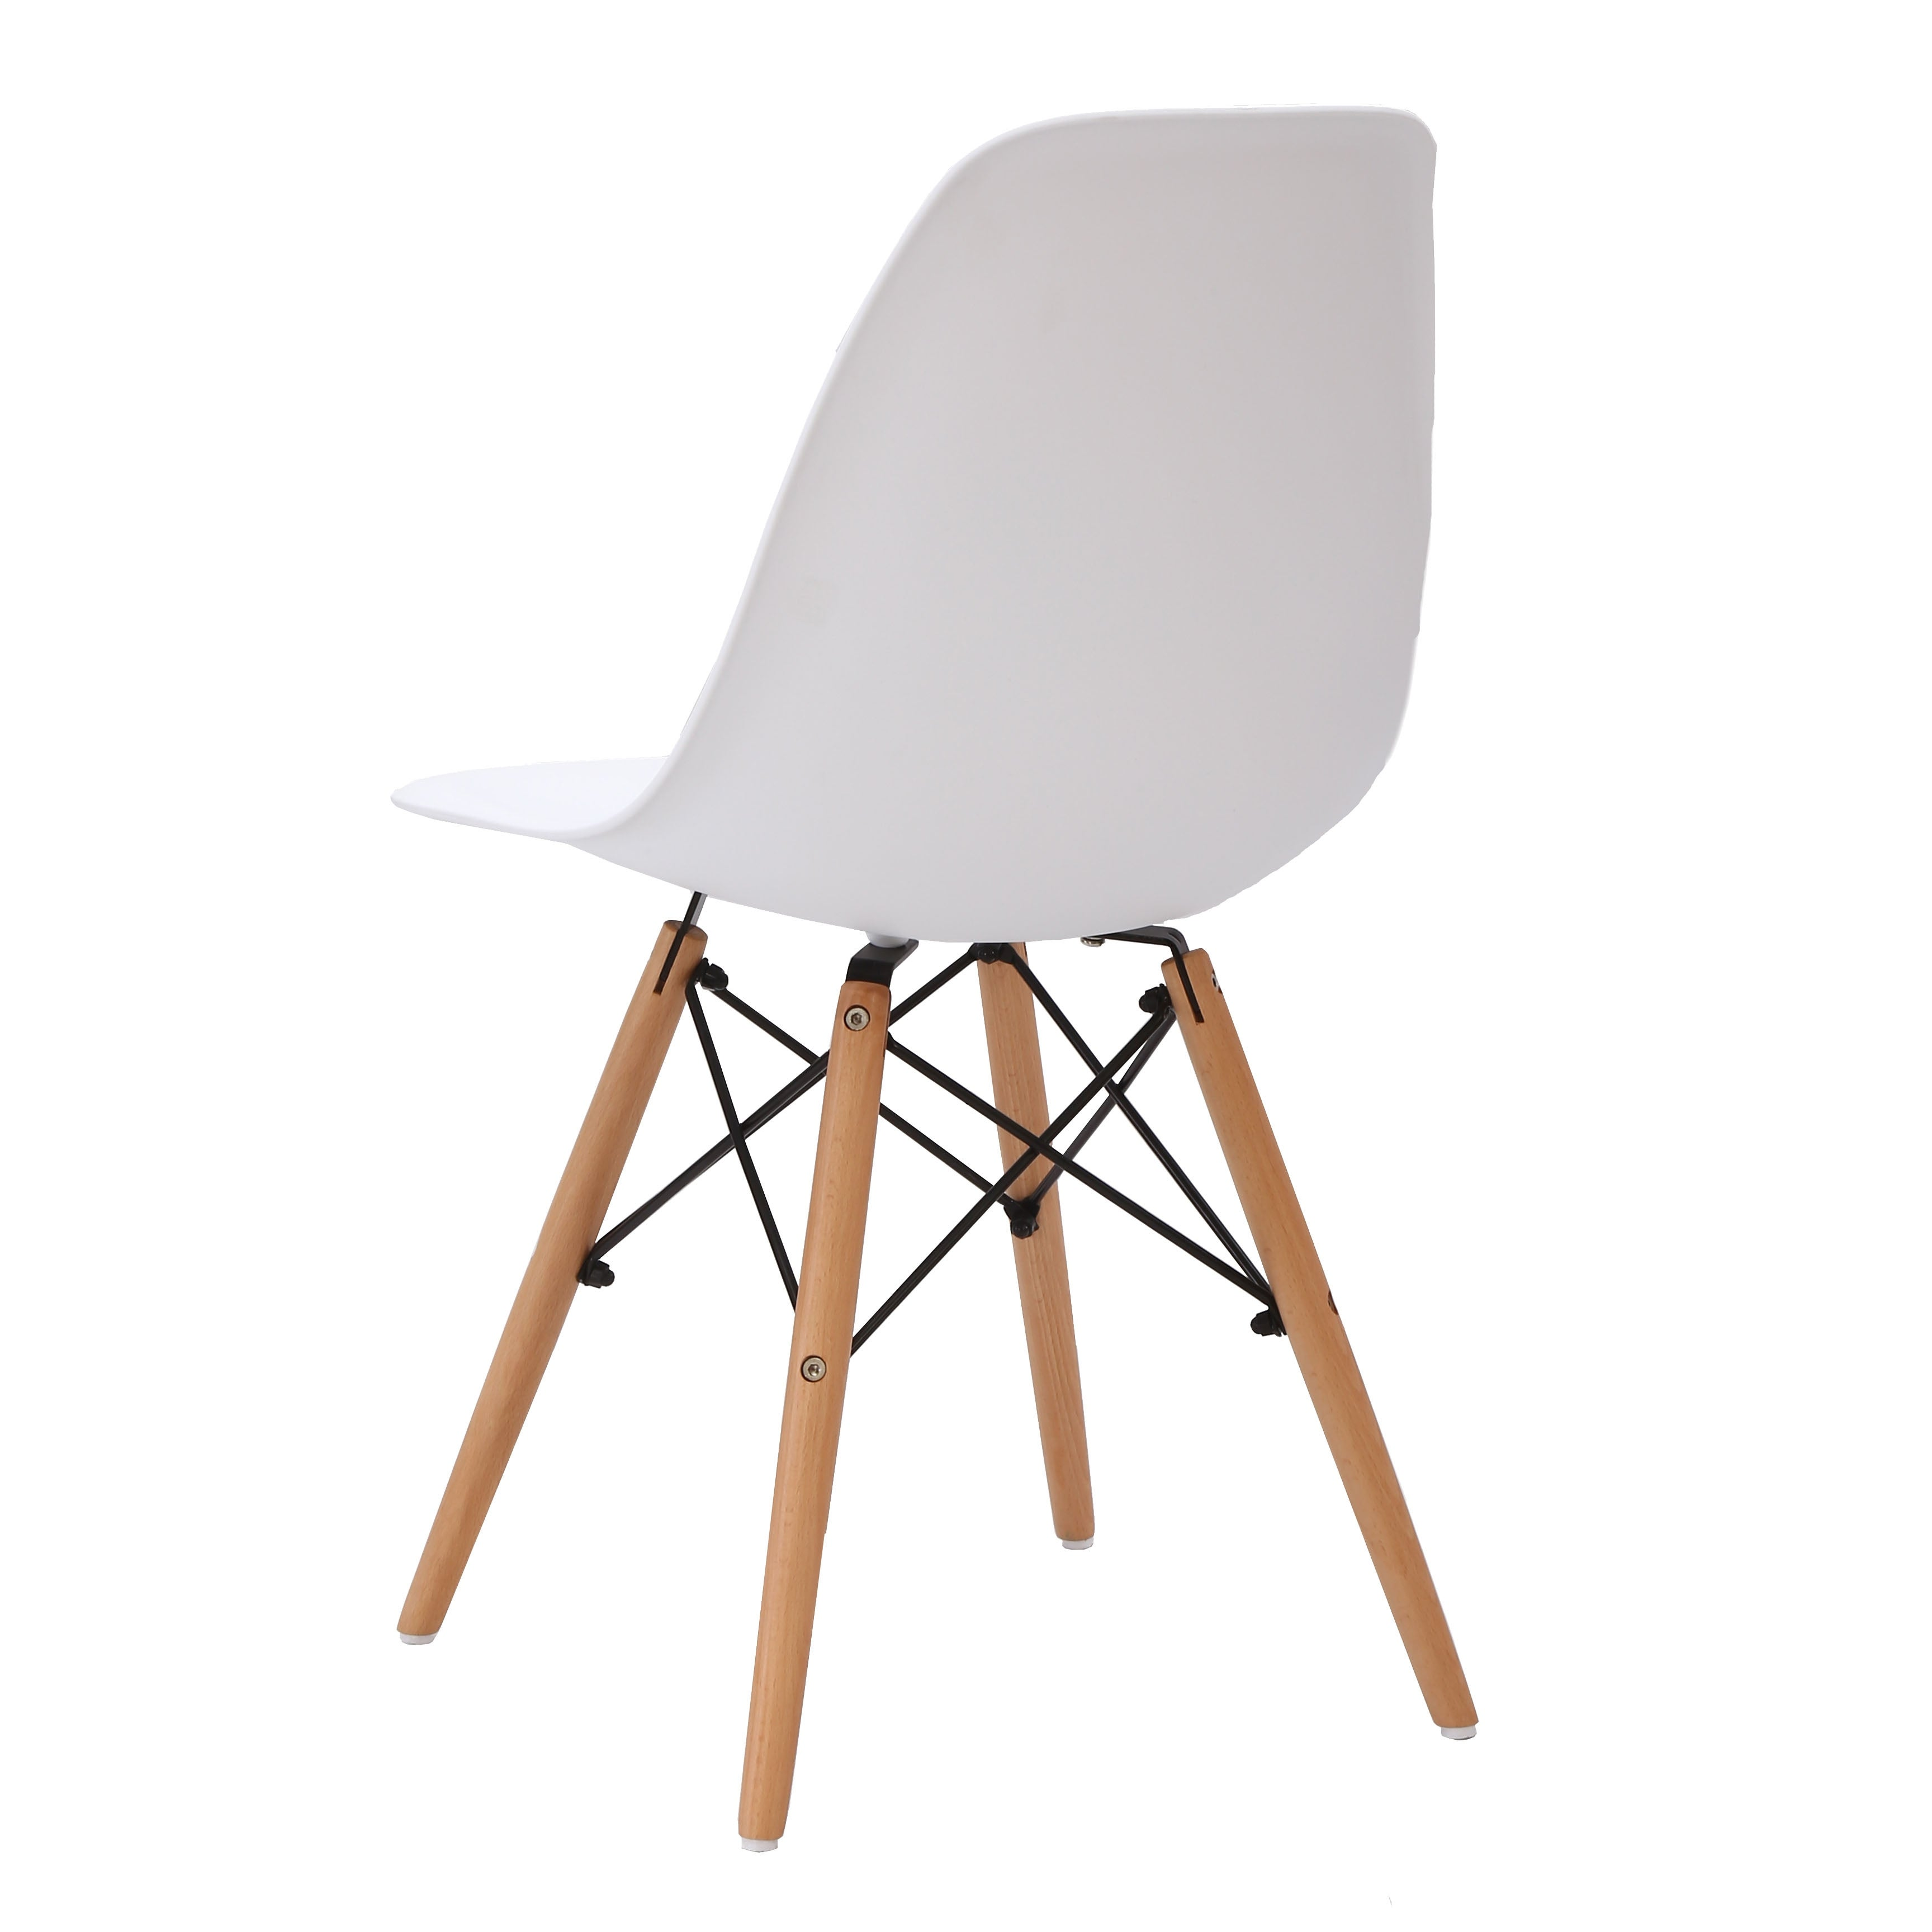 April Mid Century Chair On Sale Overstock 16642224